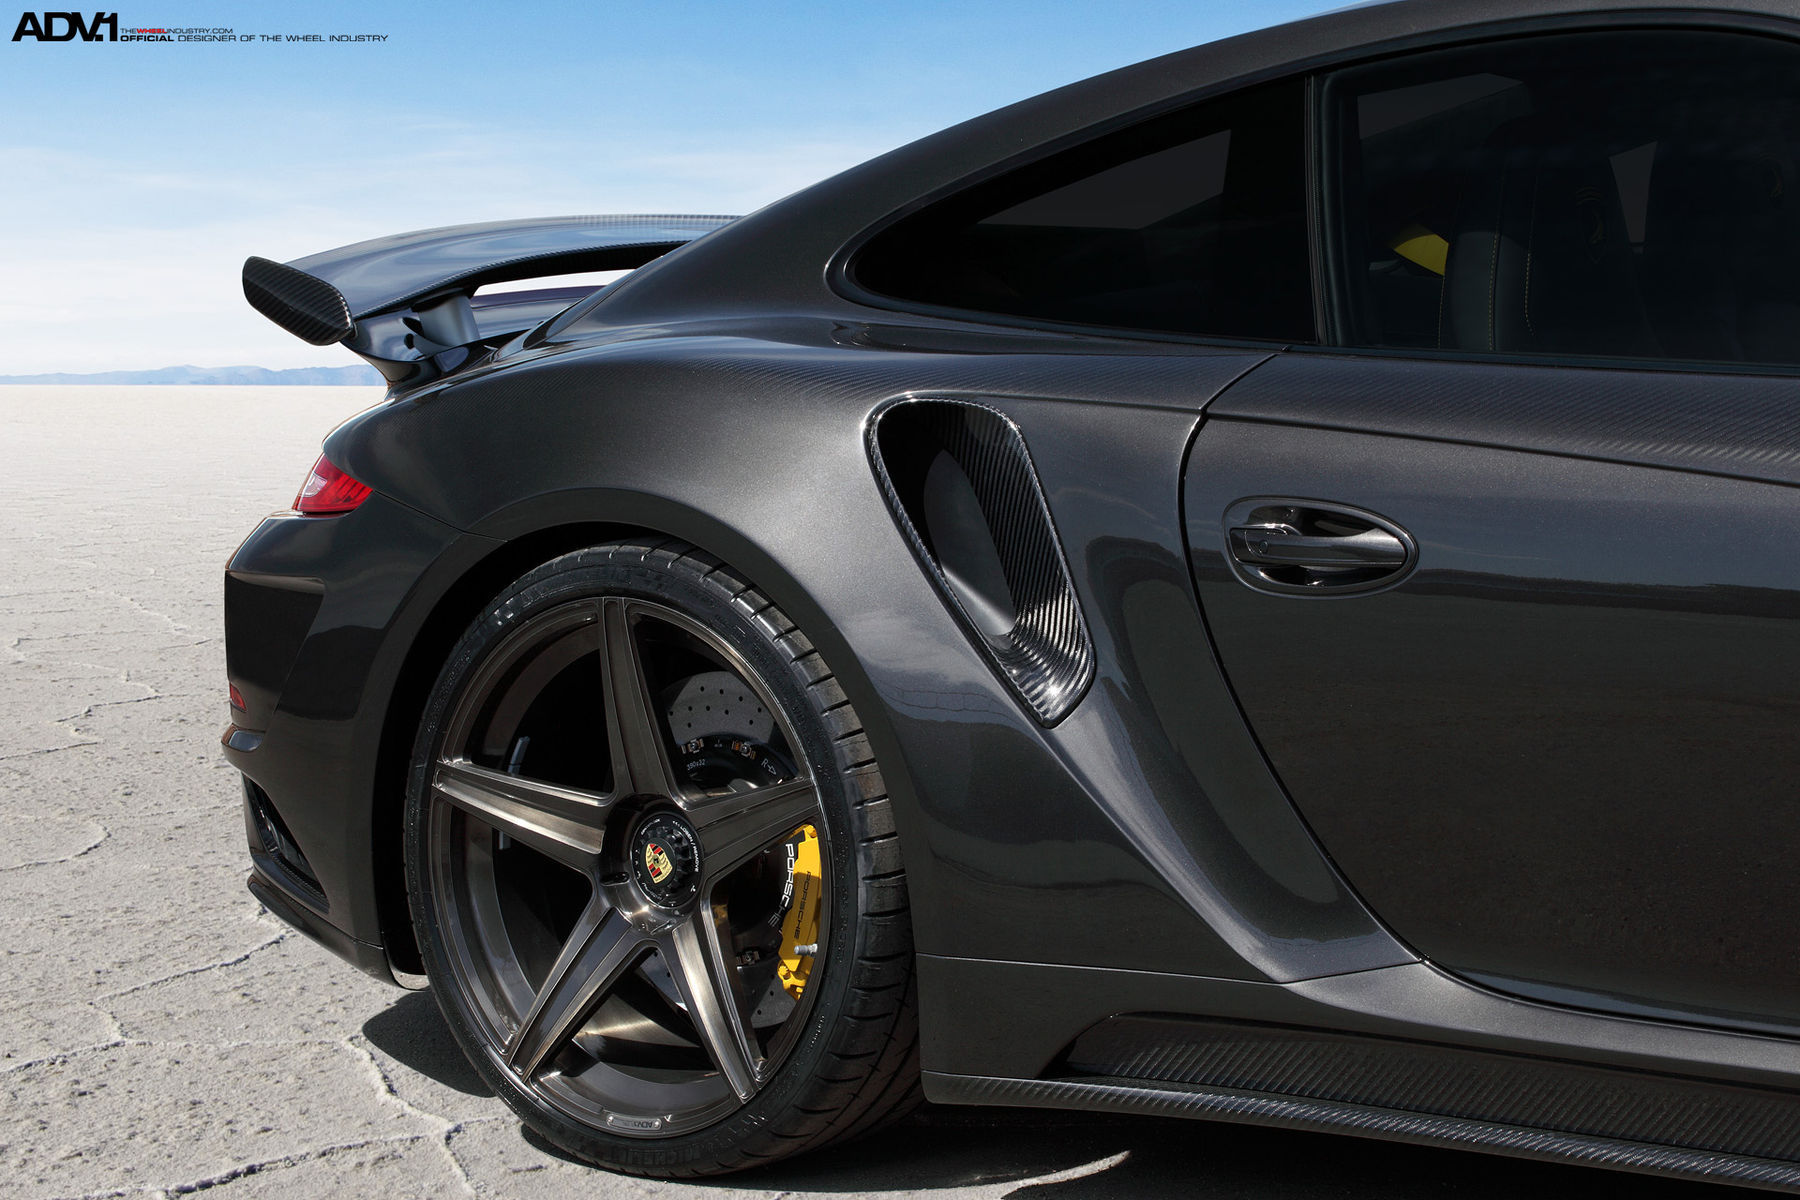 2015 Porsche 911 | Top Car Stinger 991 Turbo S